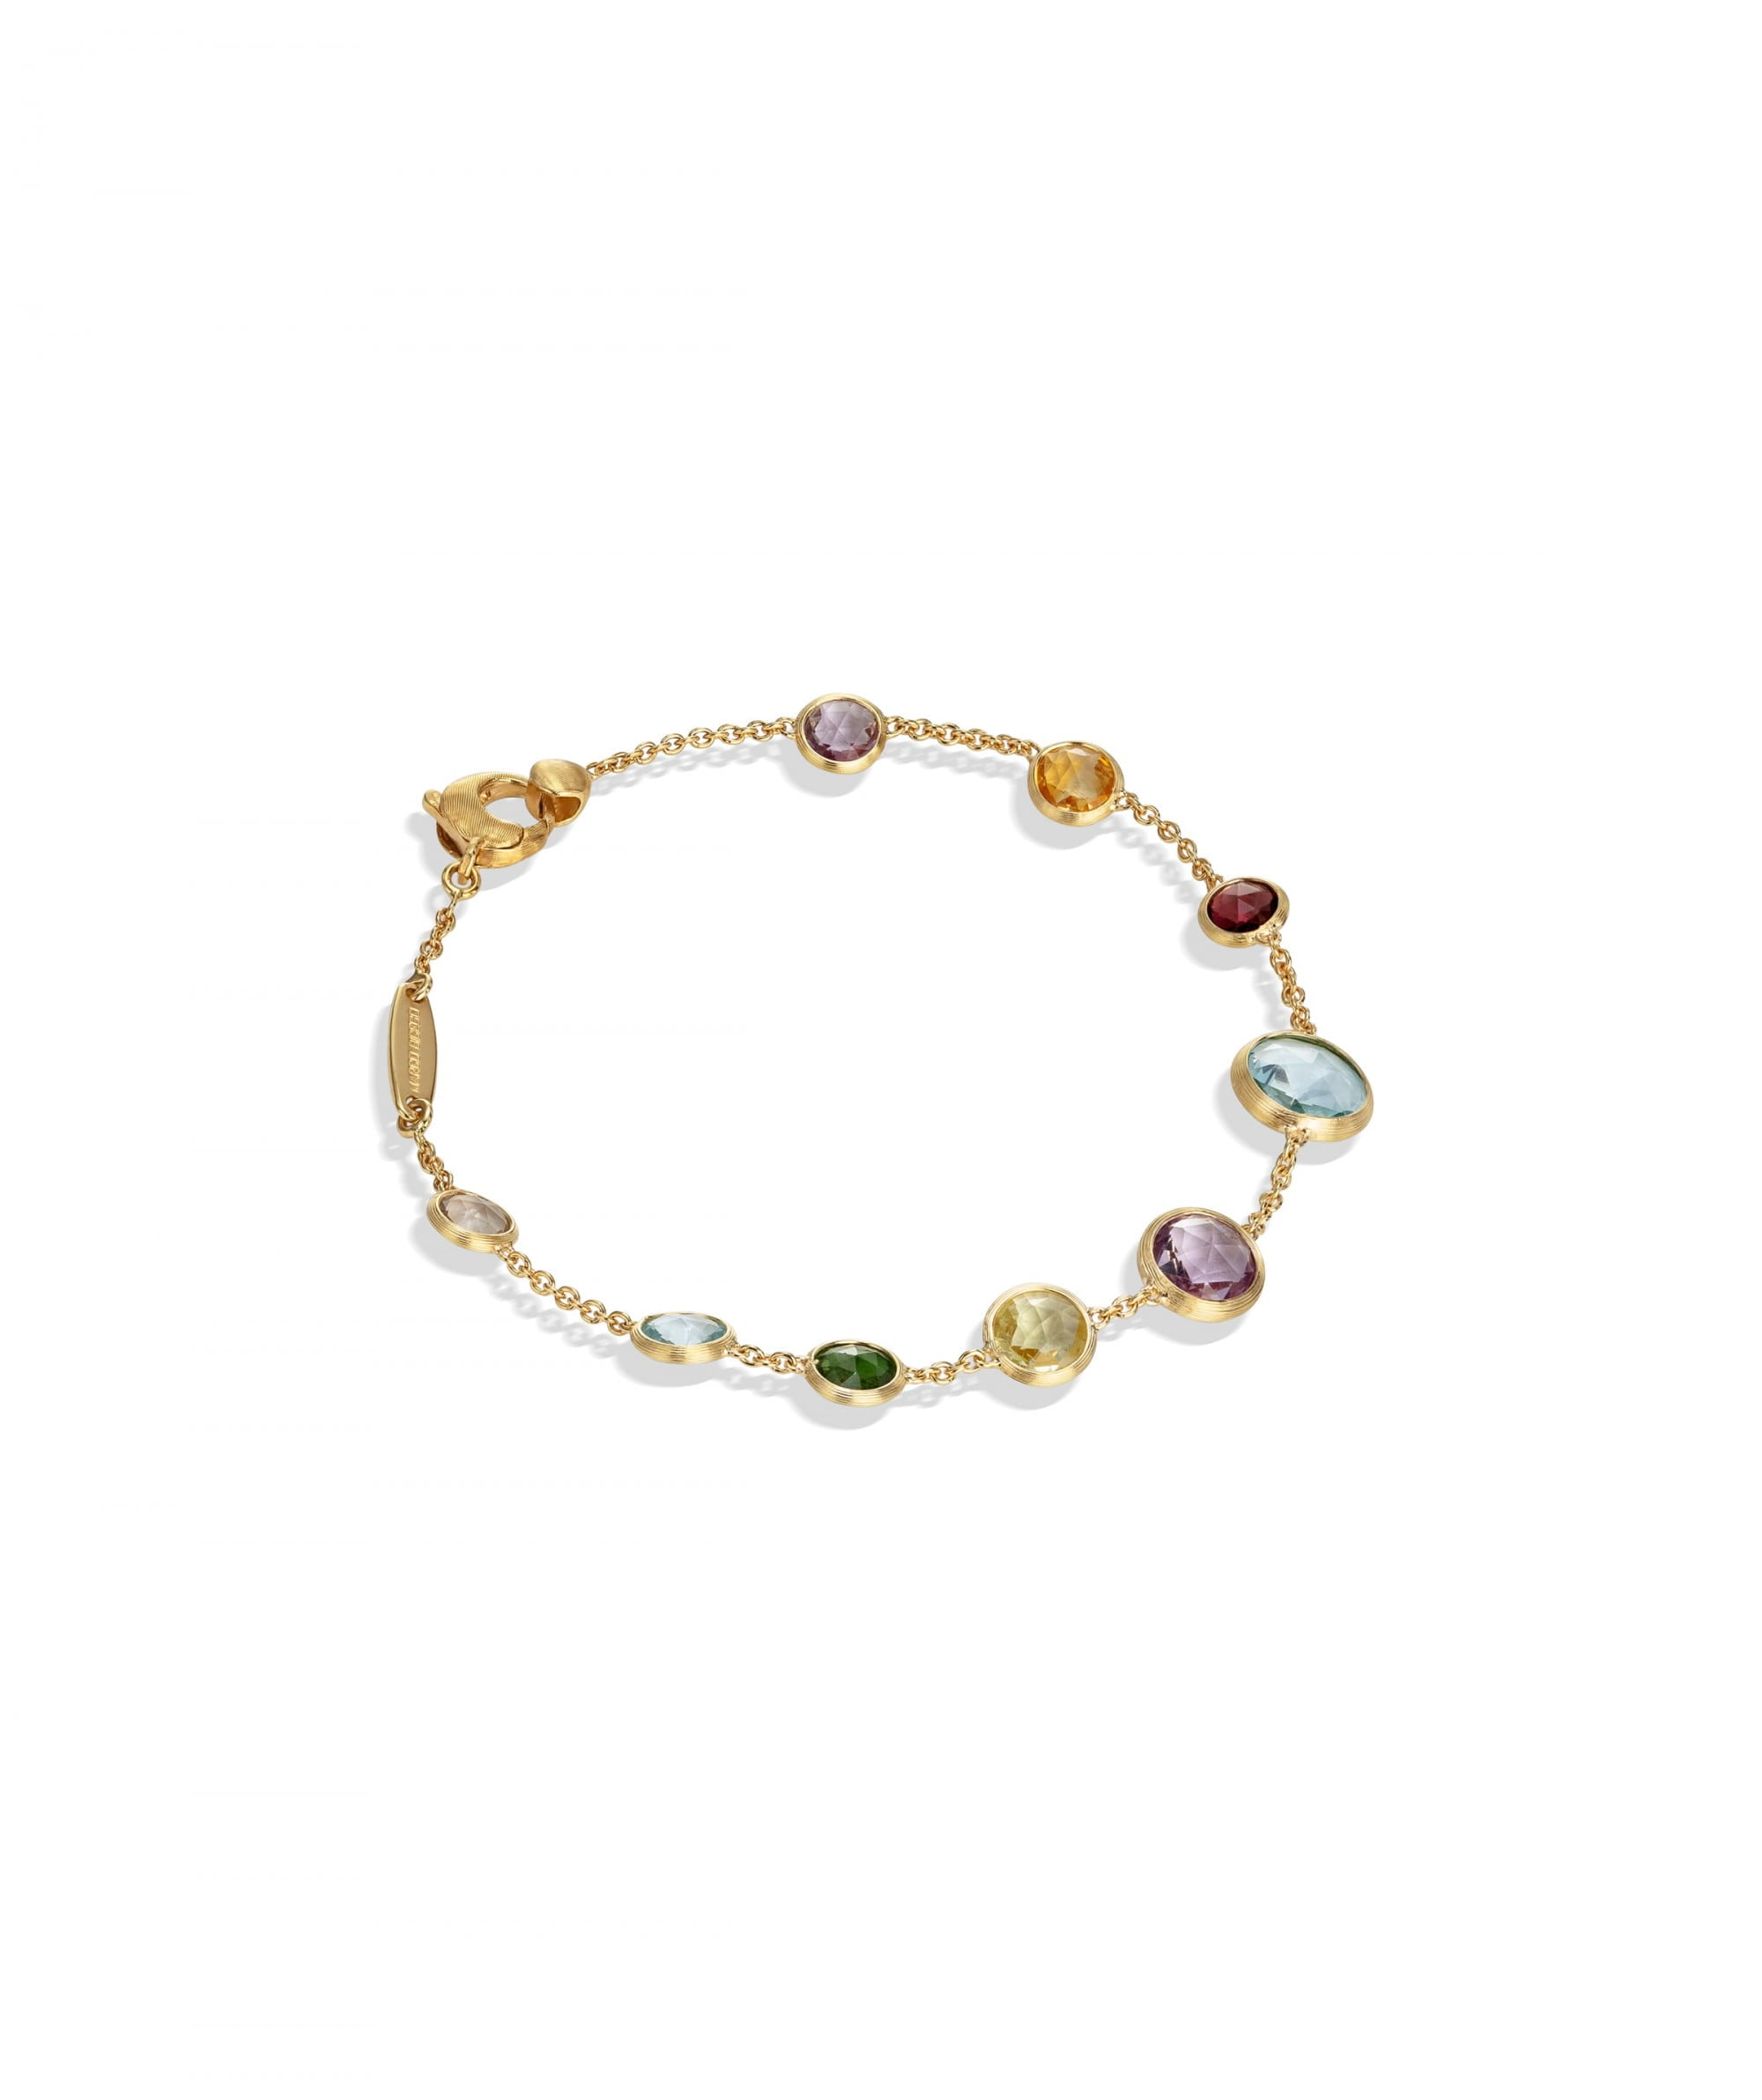 Jaipur Colour Bracelet in 18k Yellow Gold with Mixed Gemstones - Orsini Jewellers NZ